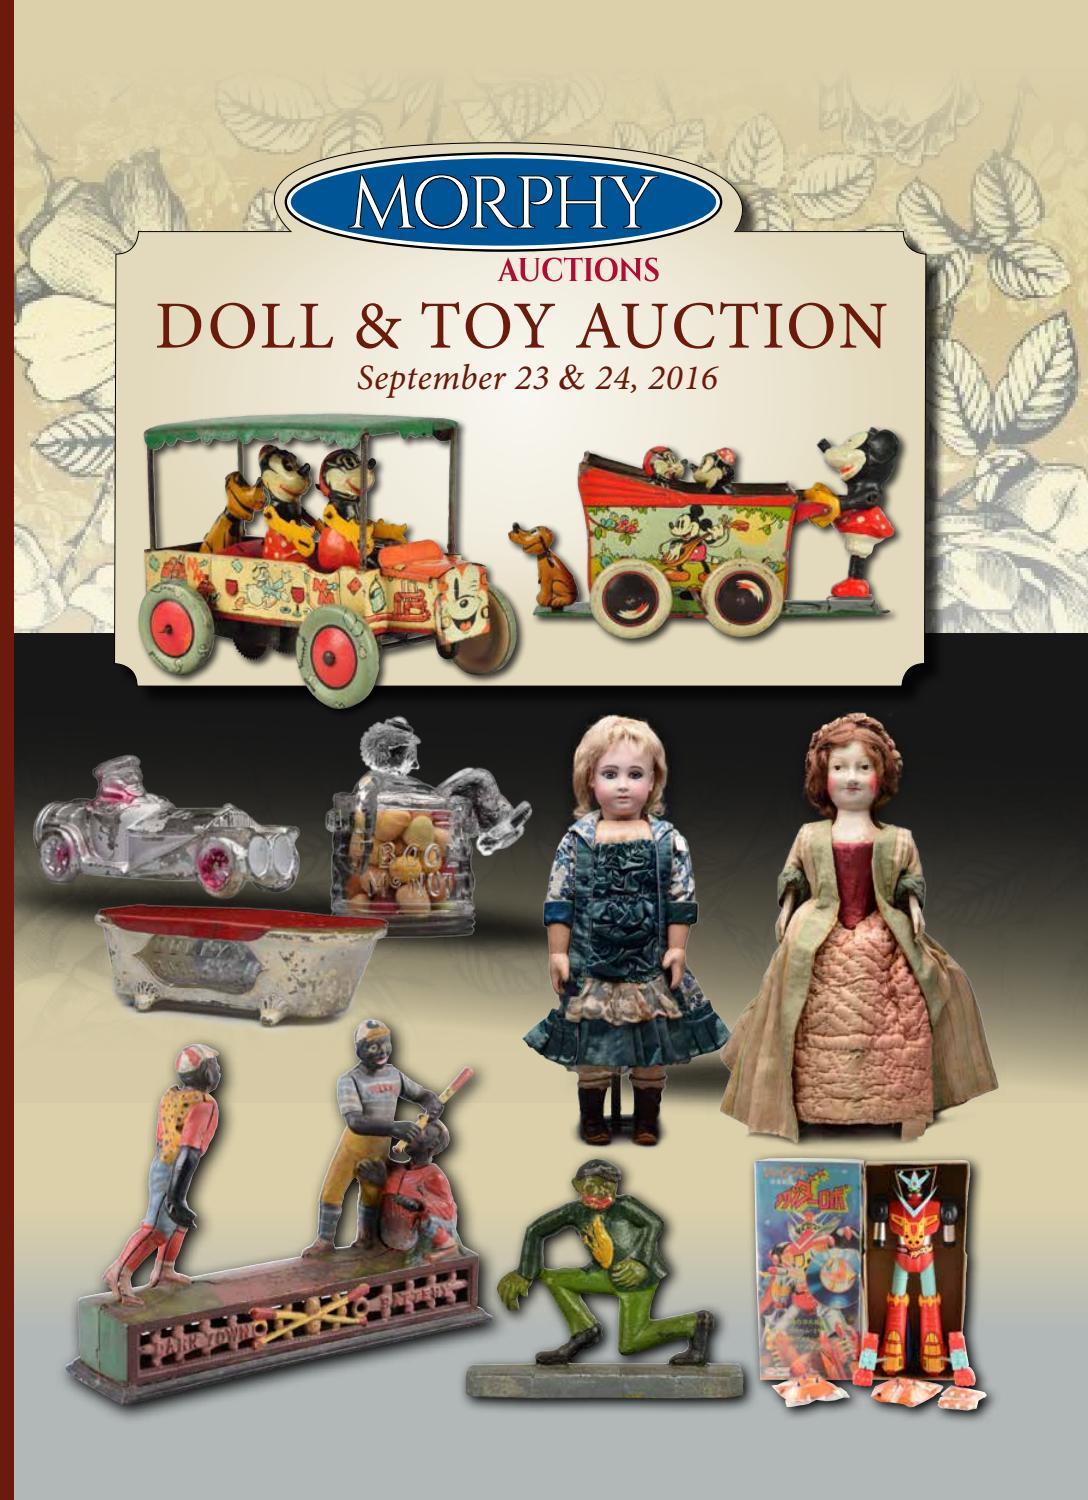 960d07ee9 2016 September 23-24 Dolls & Toys by Morphy Auctions - issuu